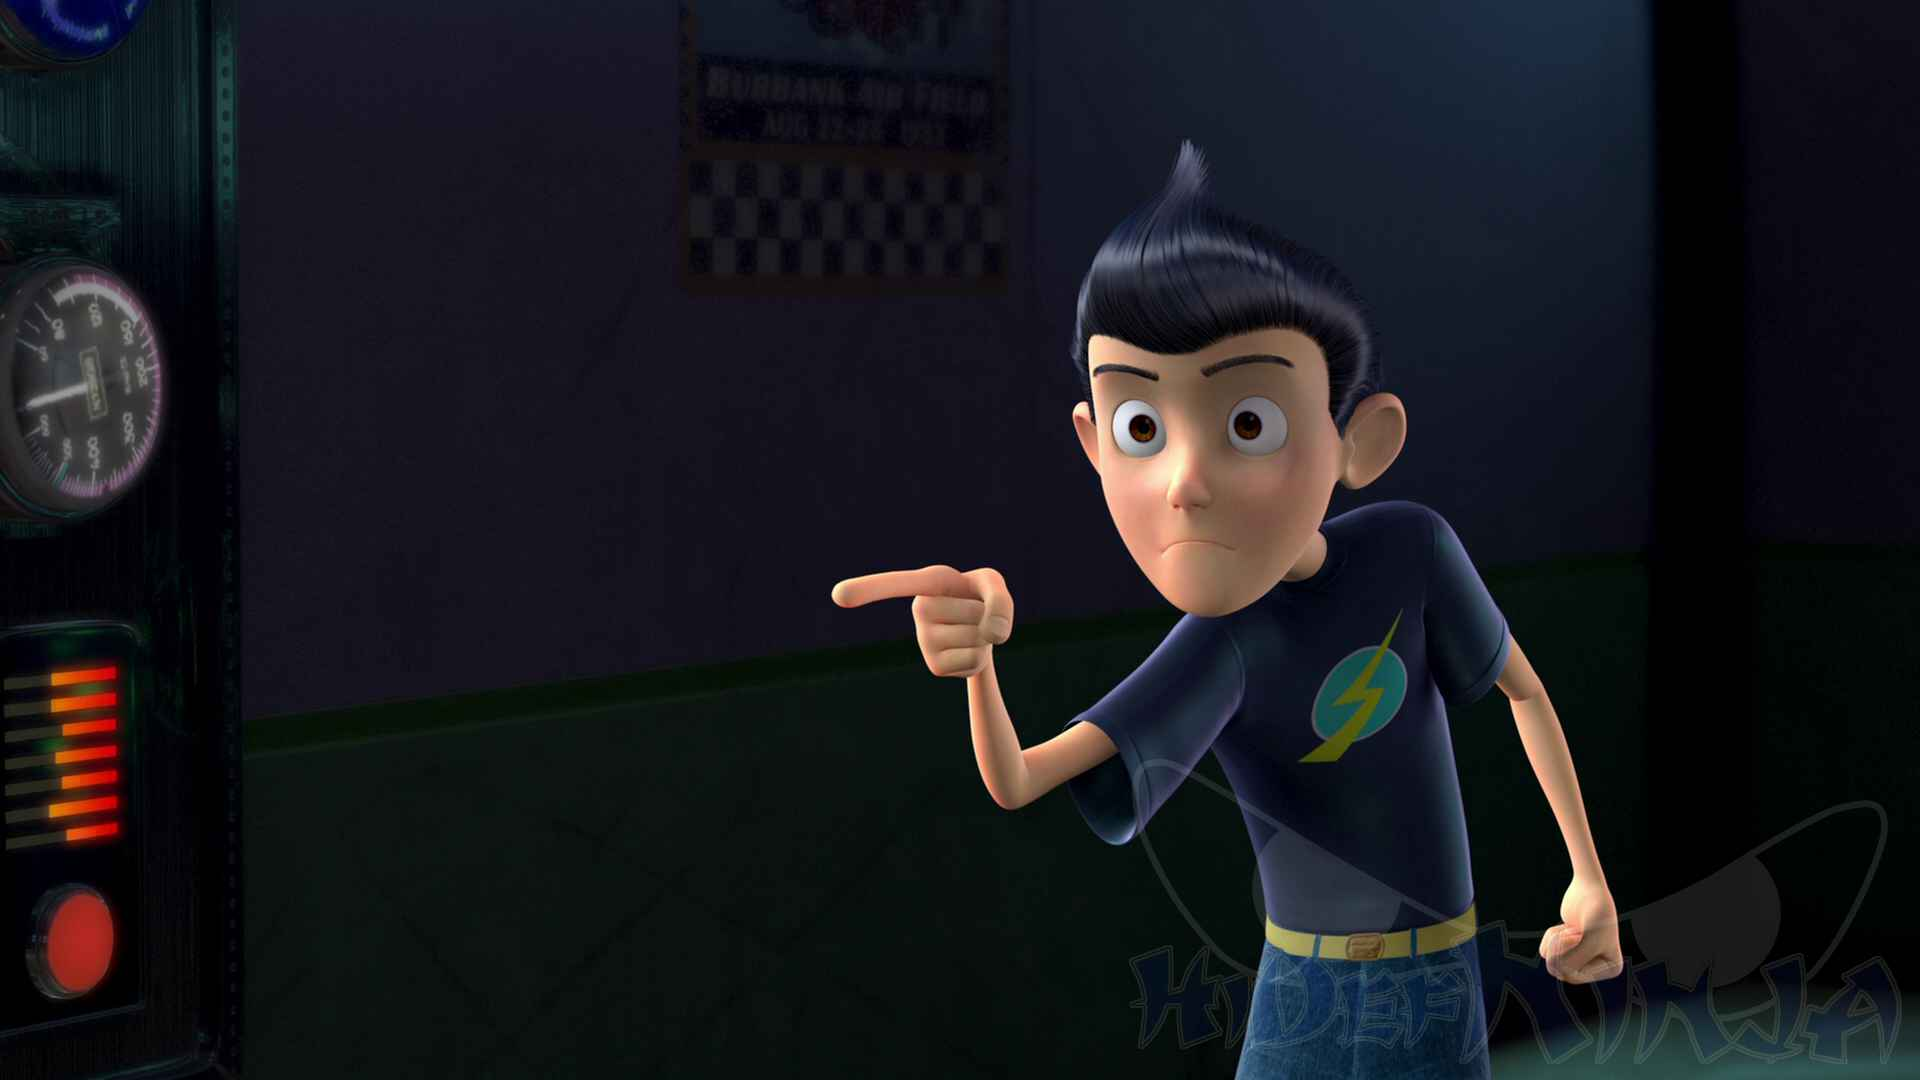 wallpapers: Meet The Robinsons Wallpapers